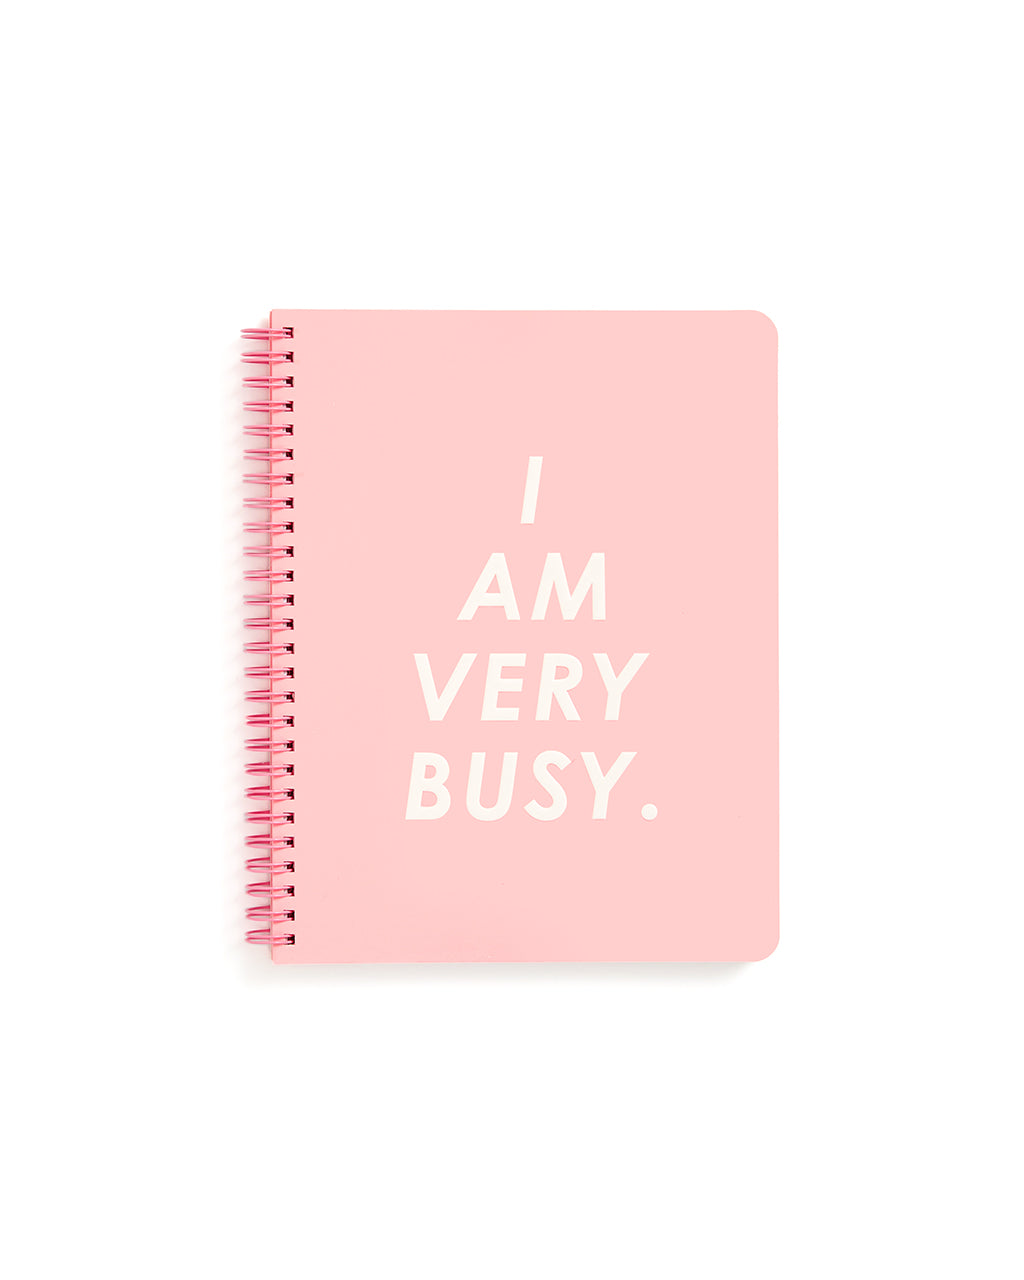 This Rough Draft Notebook comes in pink, with 'I Am Very Busy' printed in white letters across the front.